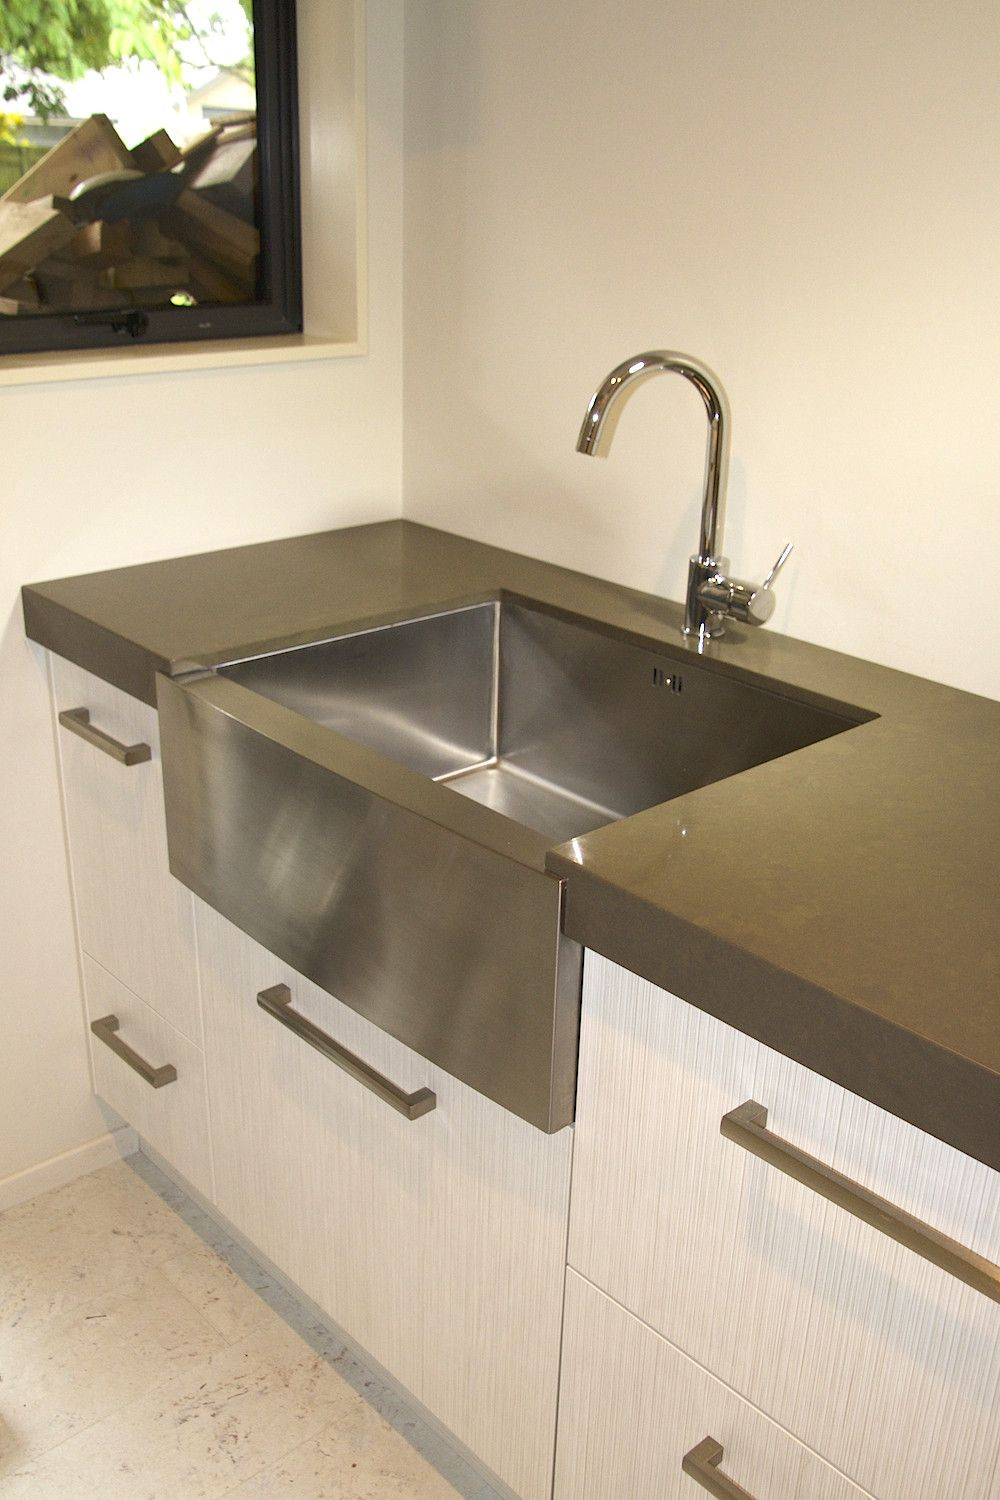 Ikon Argon Butler Sink Stainless Steel